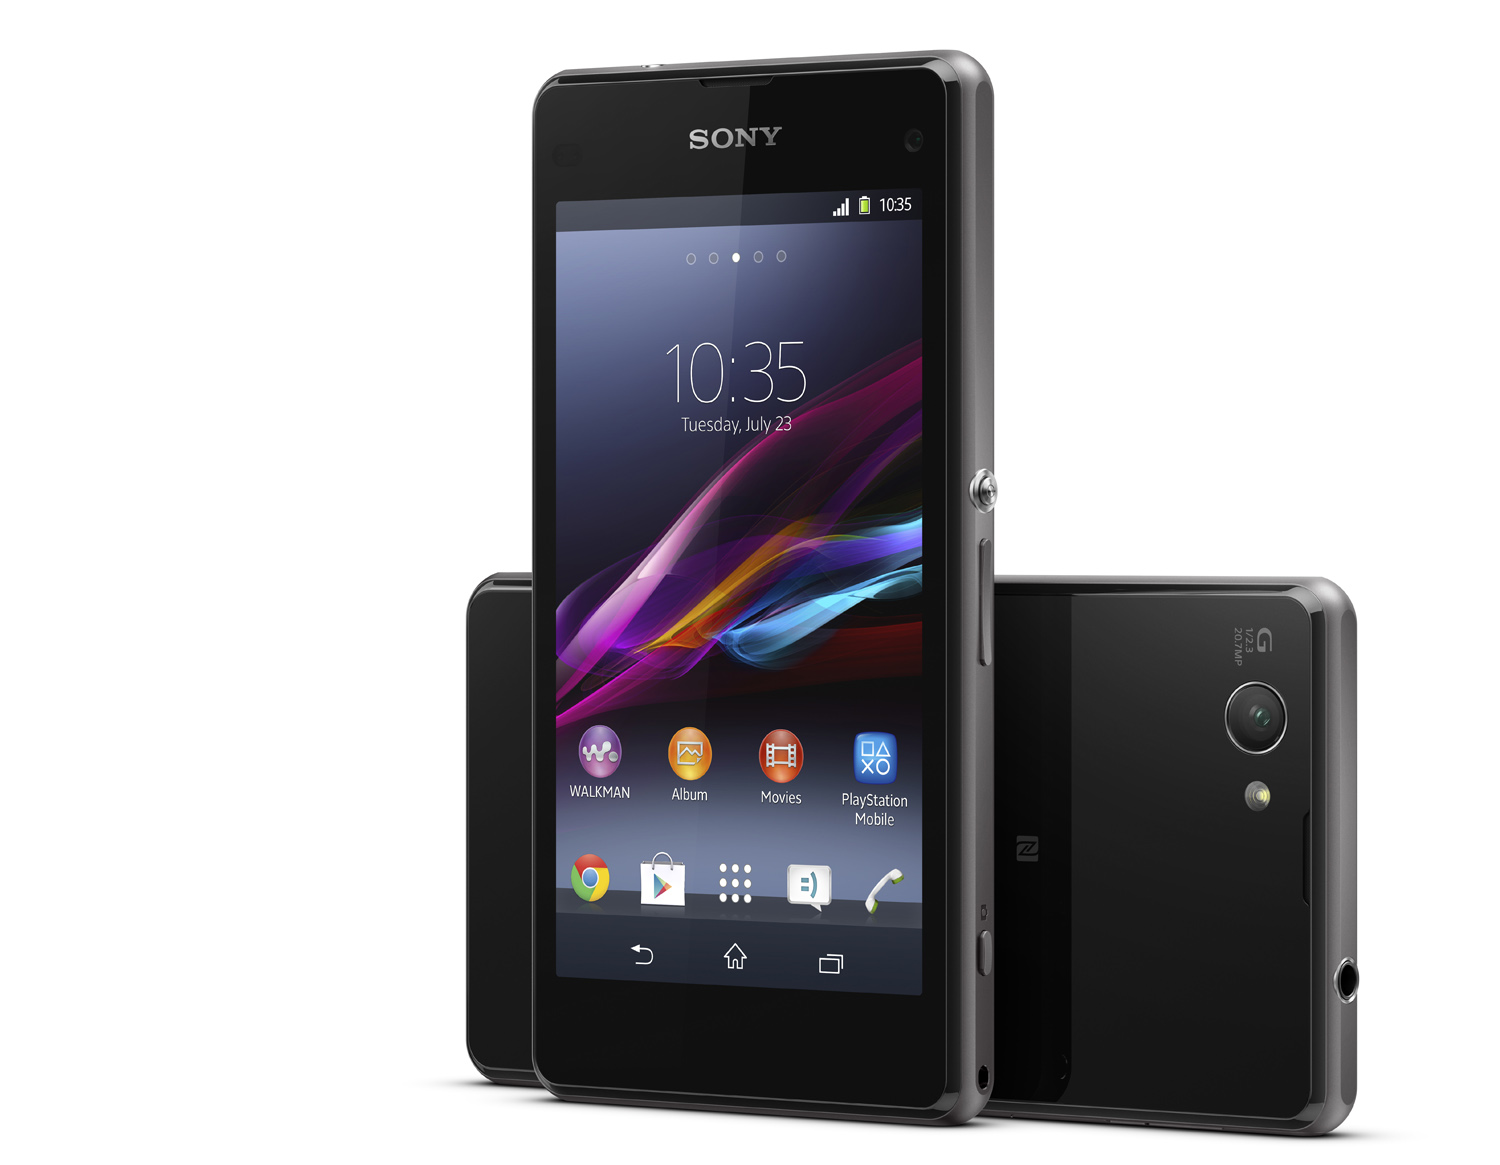 sony xperia z1 compact handliches highend smartphone mit. Black Bedroom Furniture Sets. Home Design Ideas